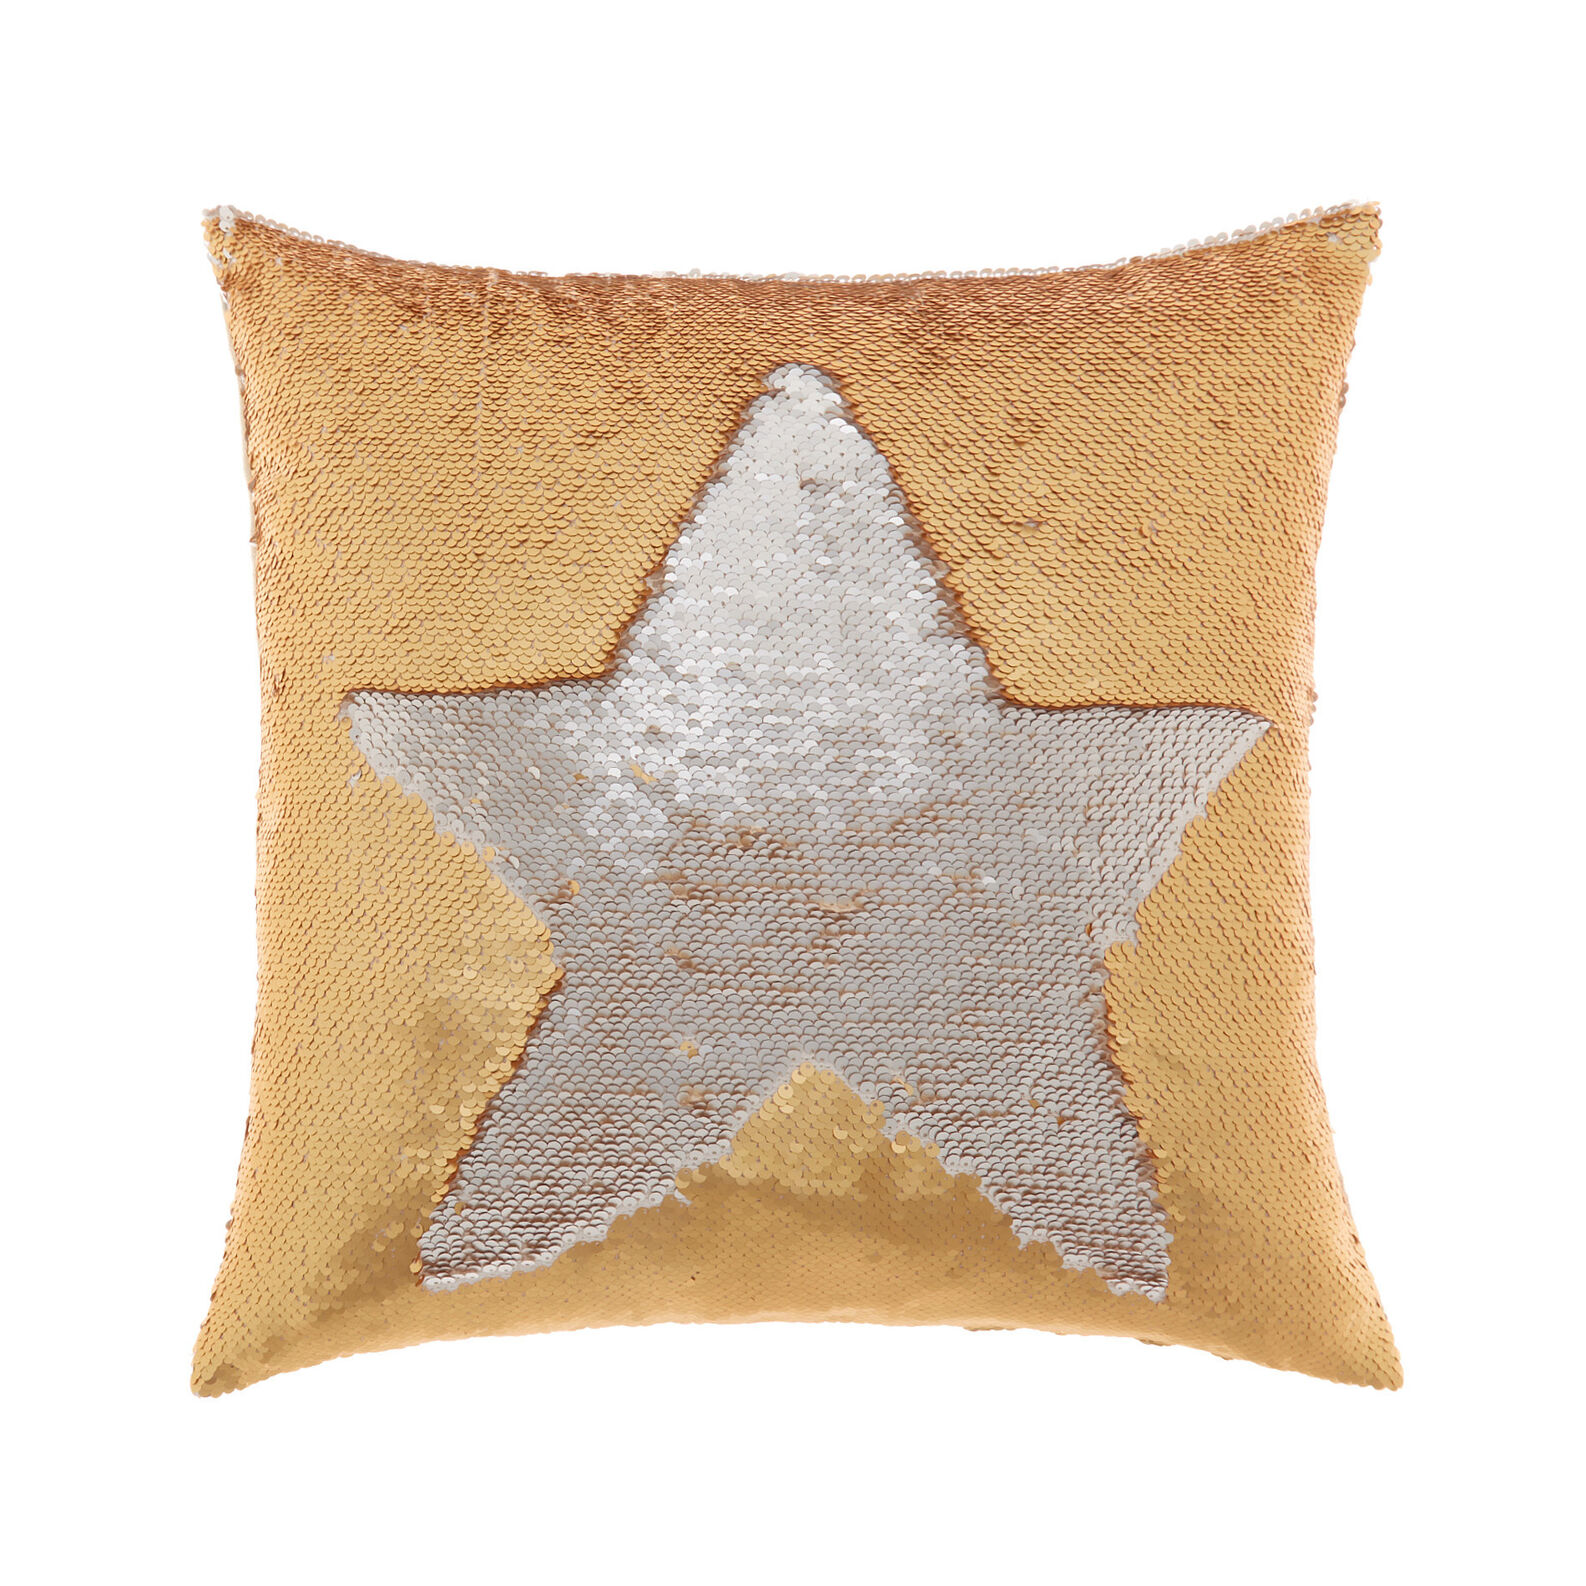 Cushion with sequins 45x45cm